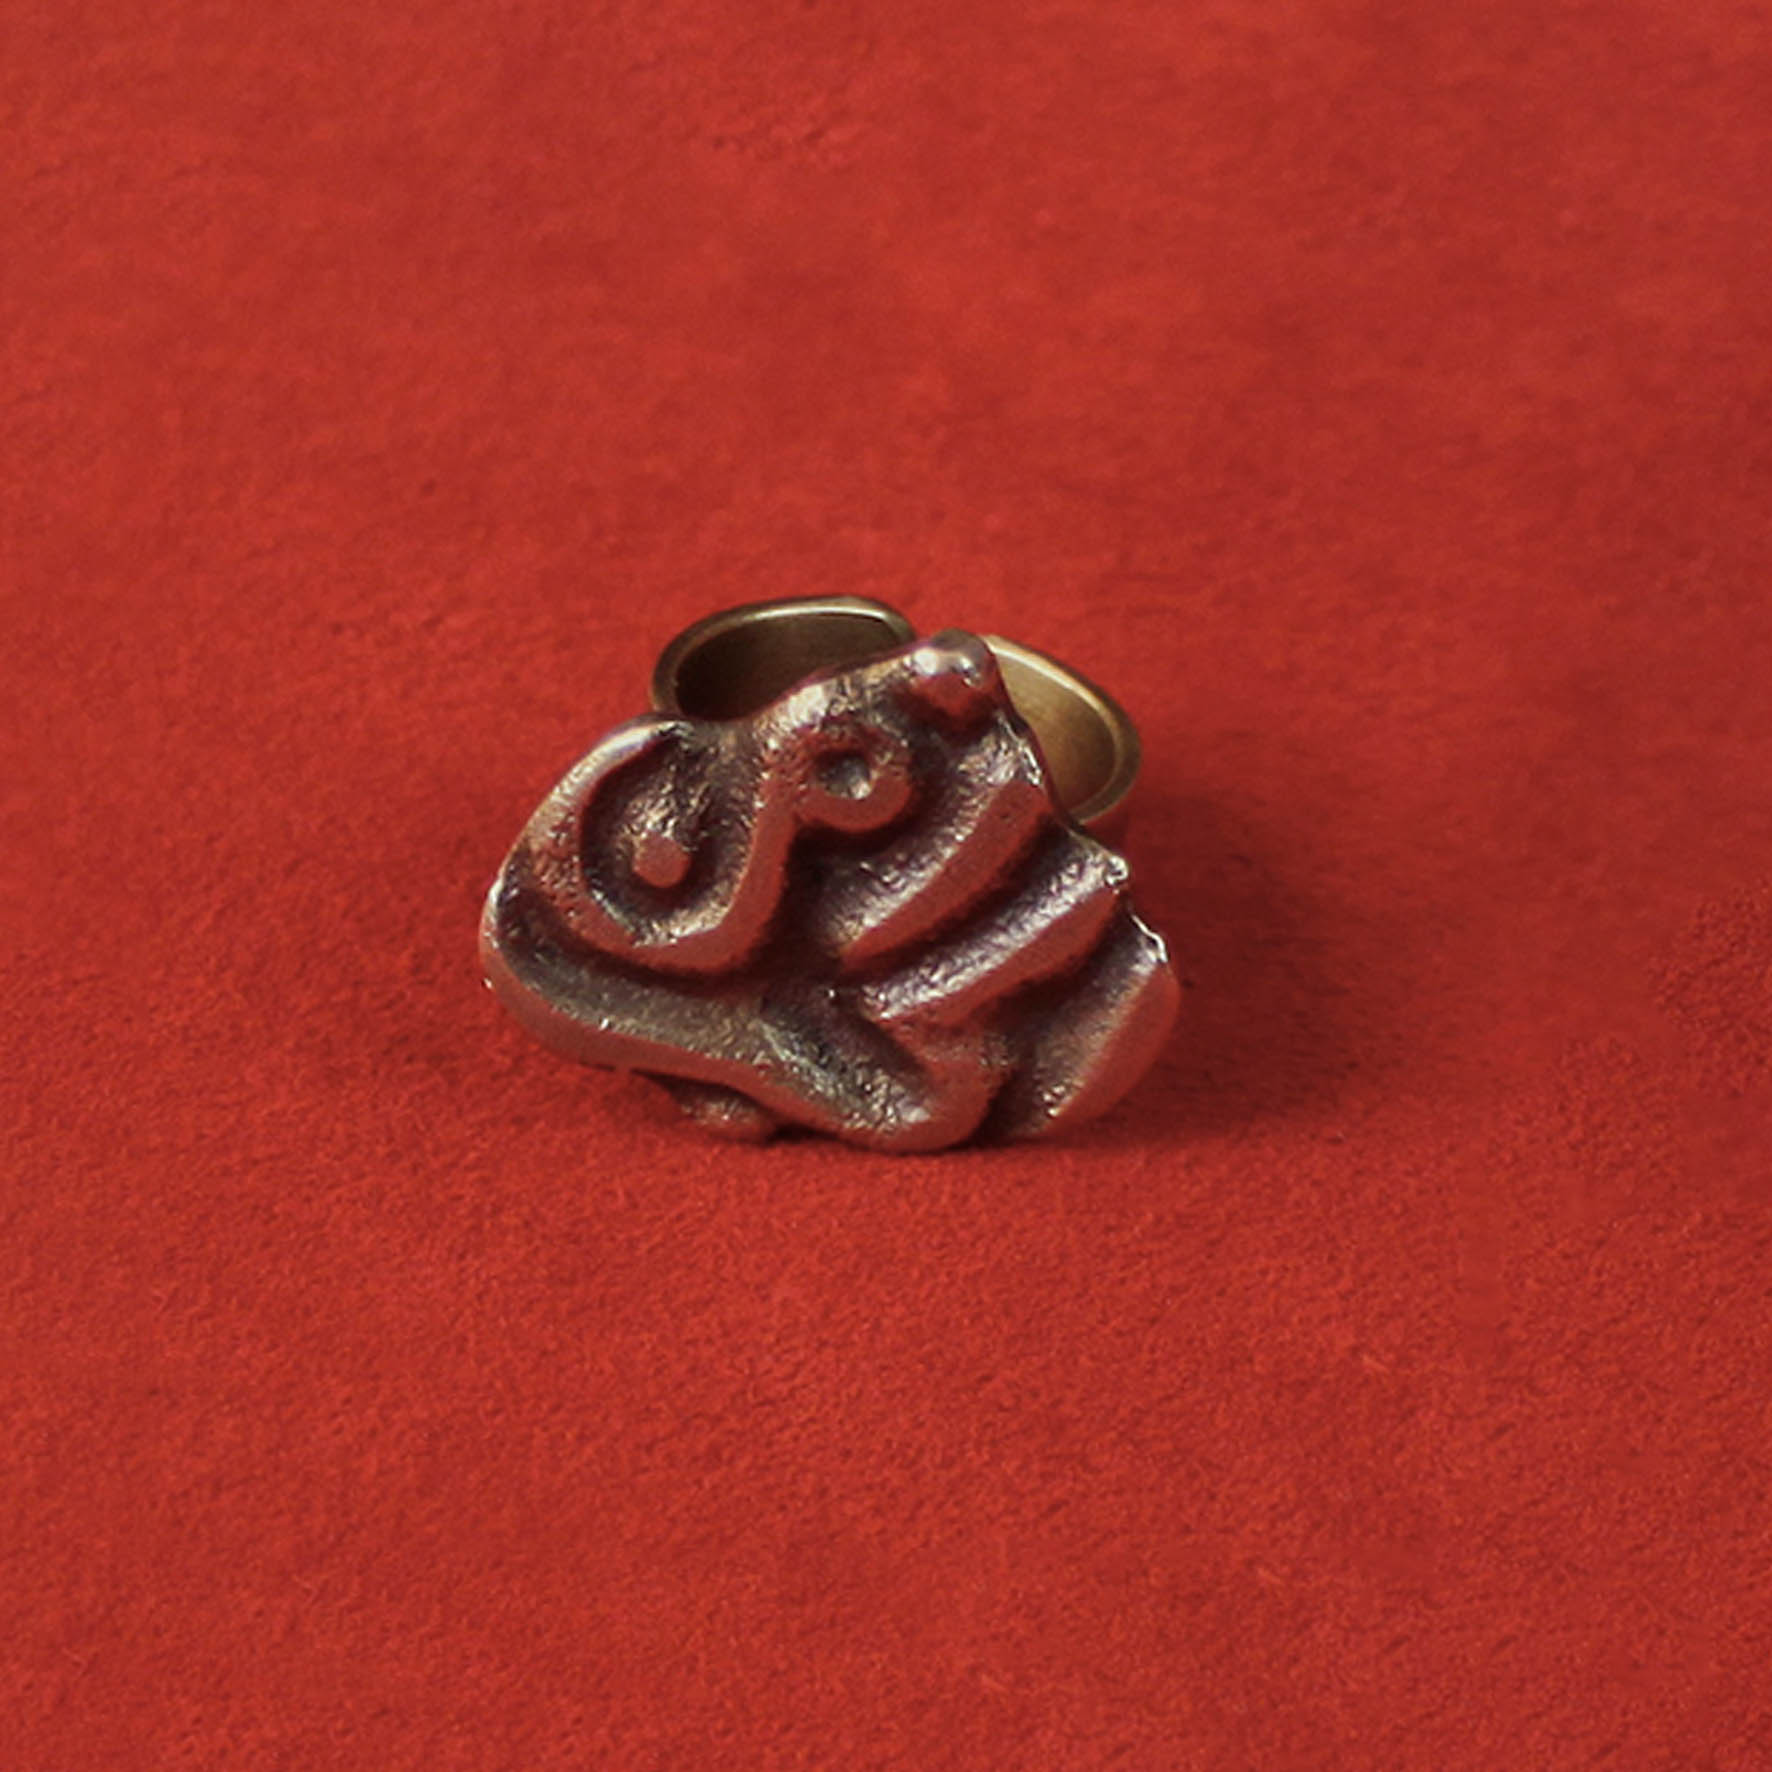 The Time of Love Ring